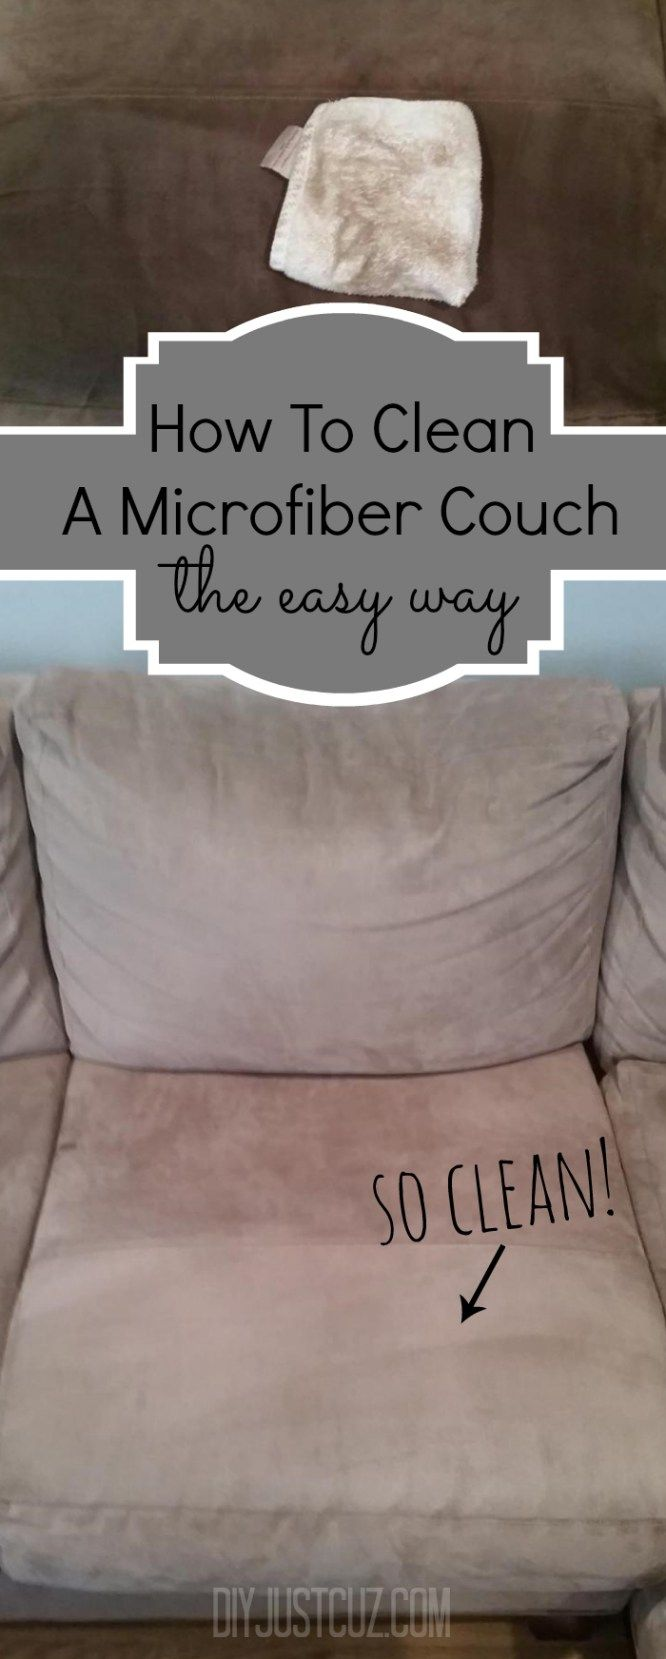 The Best Thing About A Microfiber Couch Is How Easily They